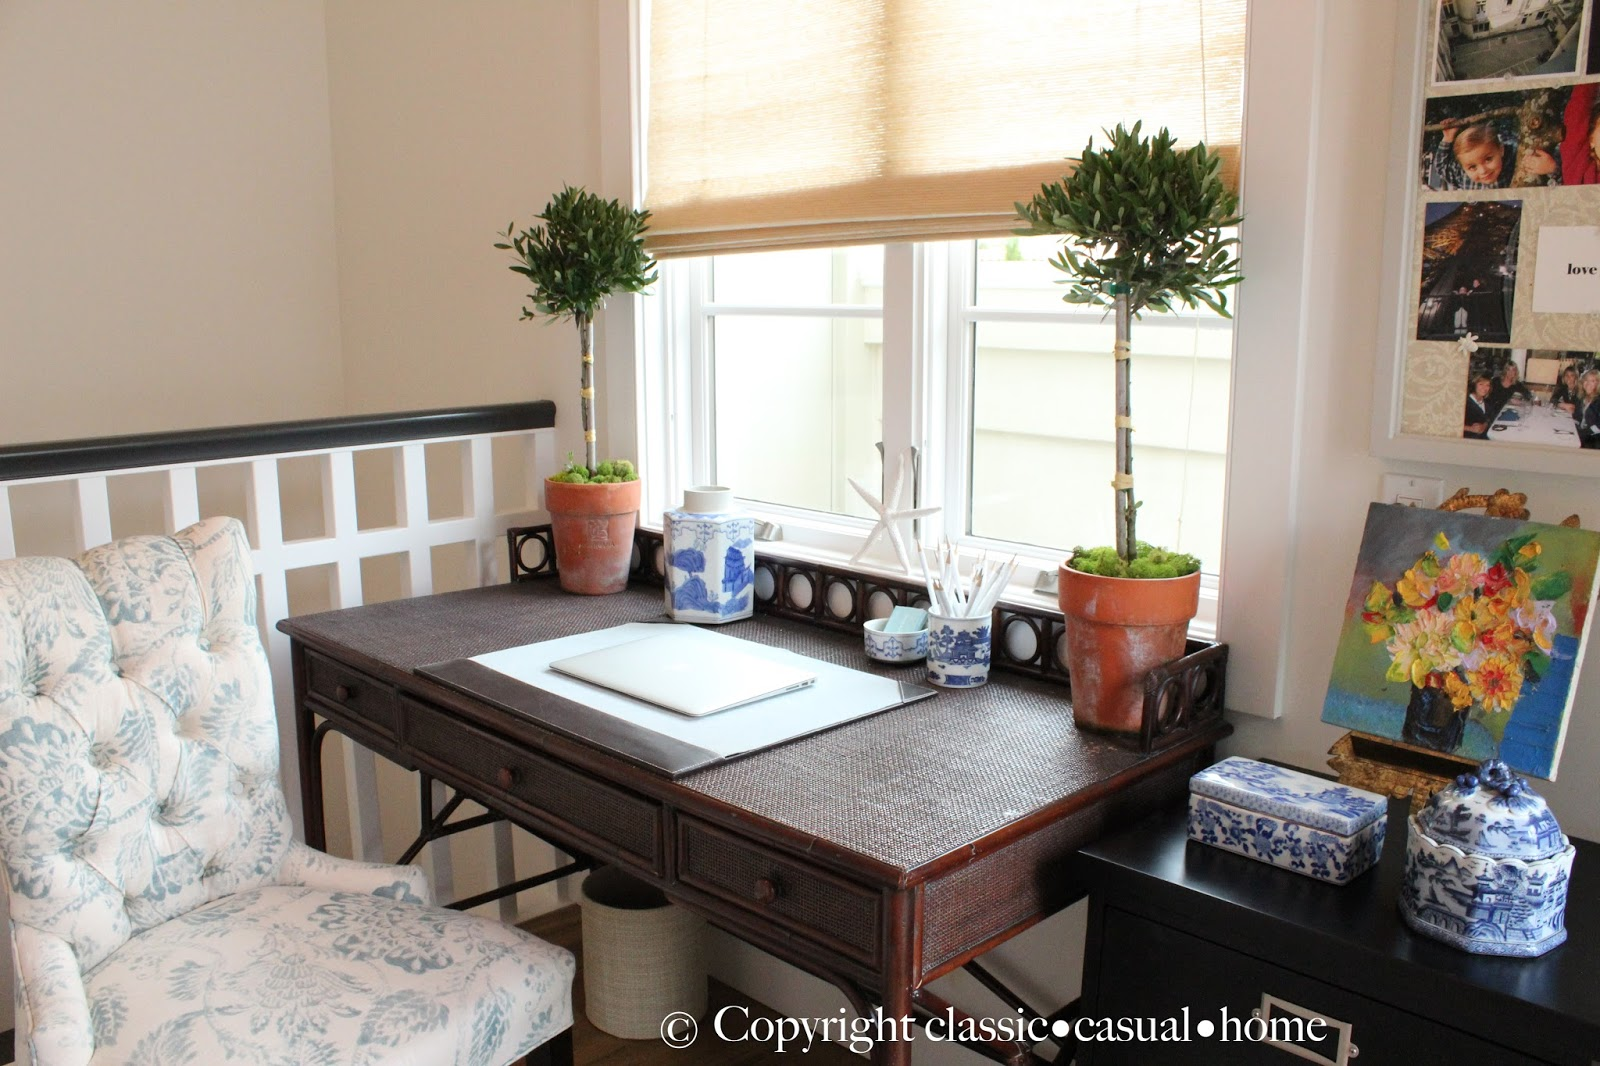 Casual Home what would you like project design to tackle next? - classic